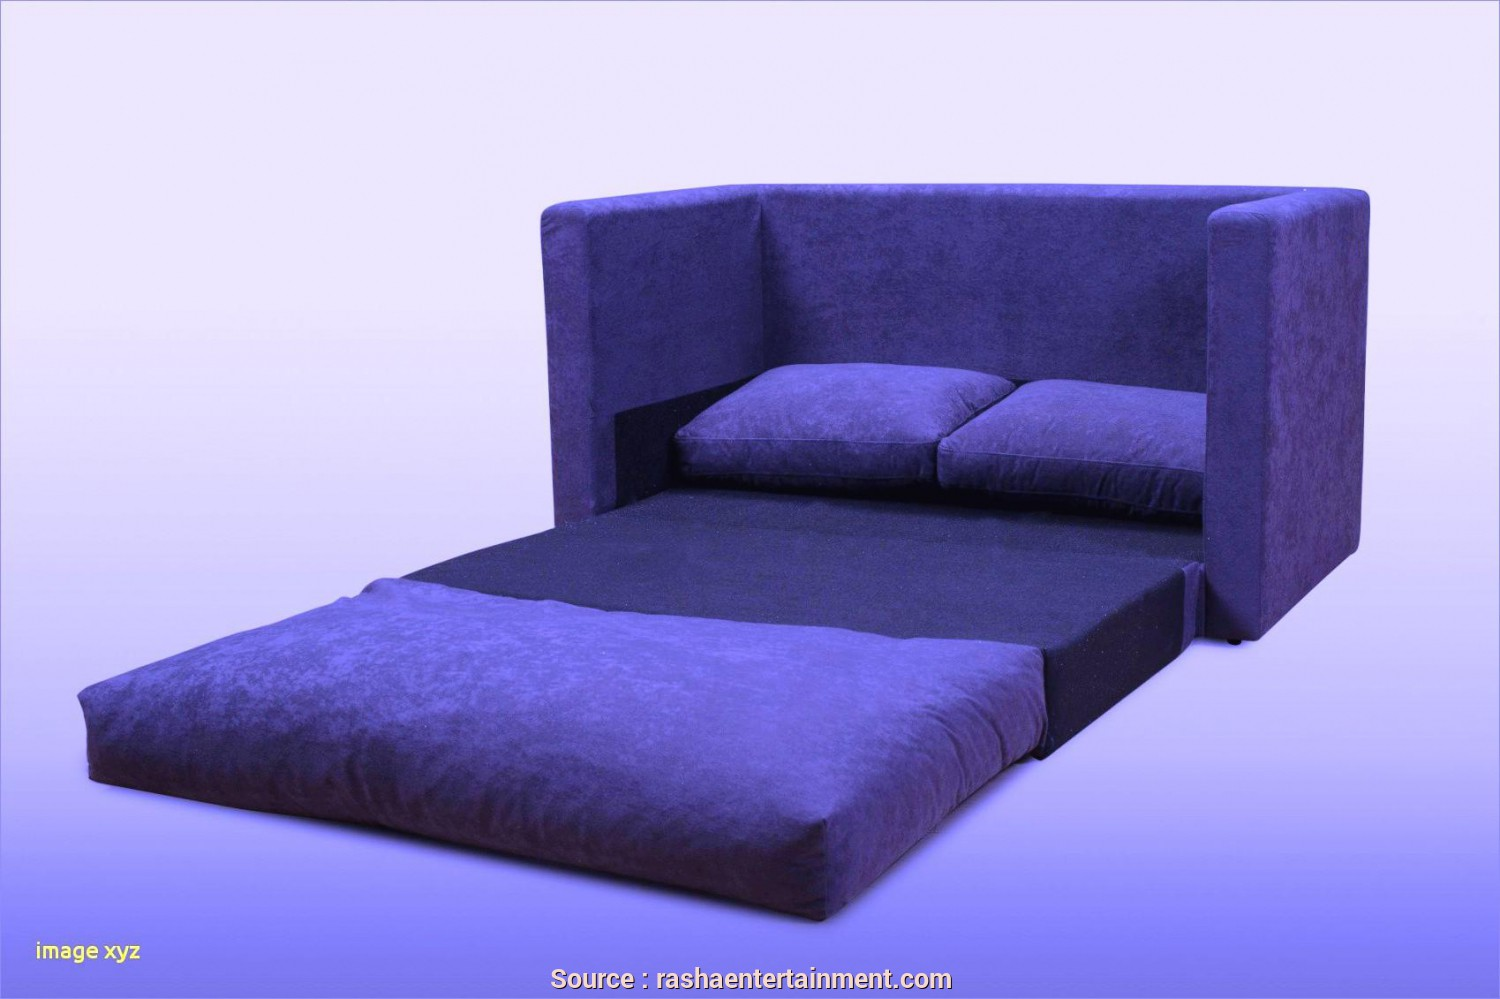 How To Fold Ikea Futon, Stupefacente Image, DIY, Fold Mattress Ikea